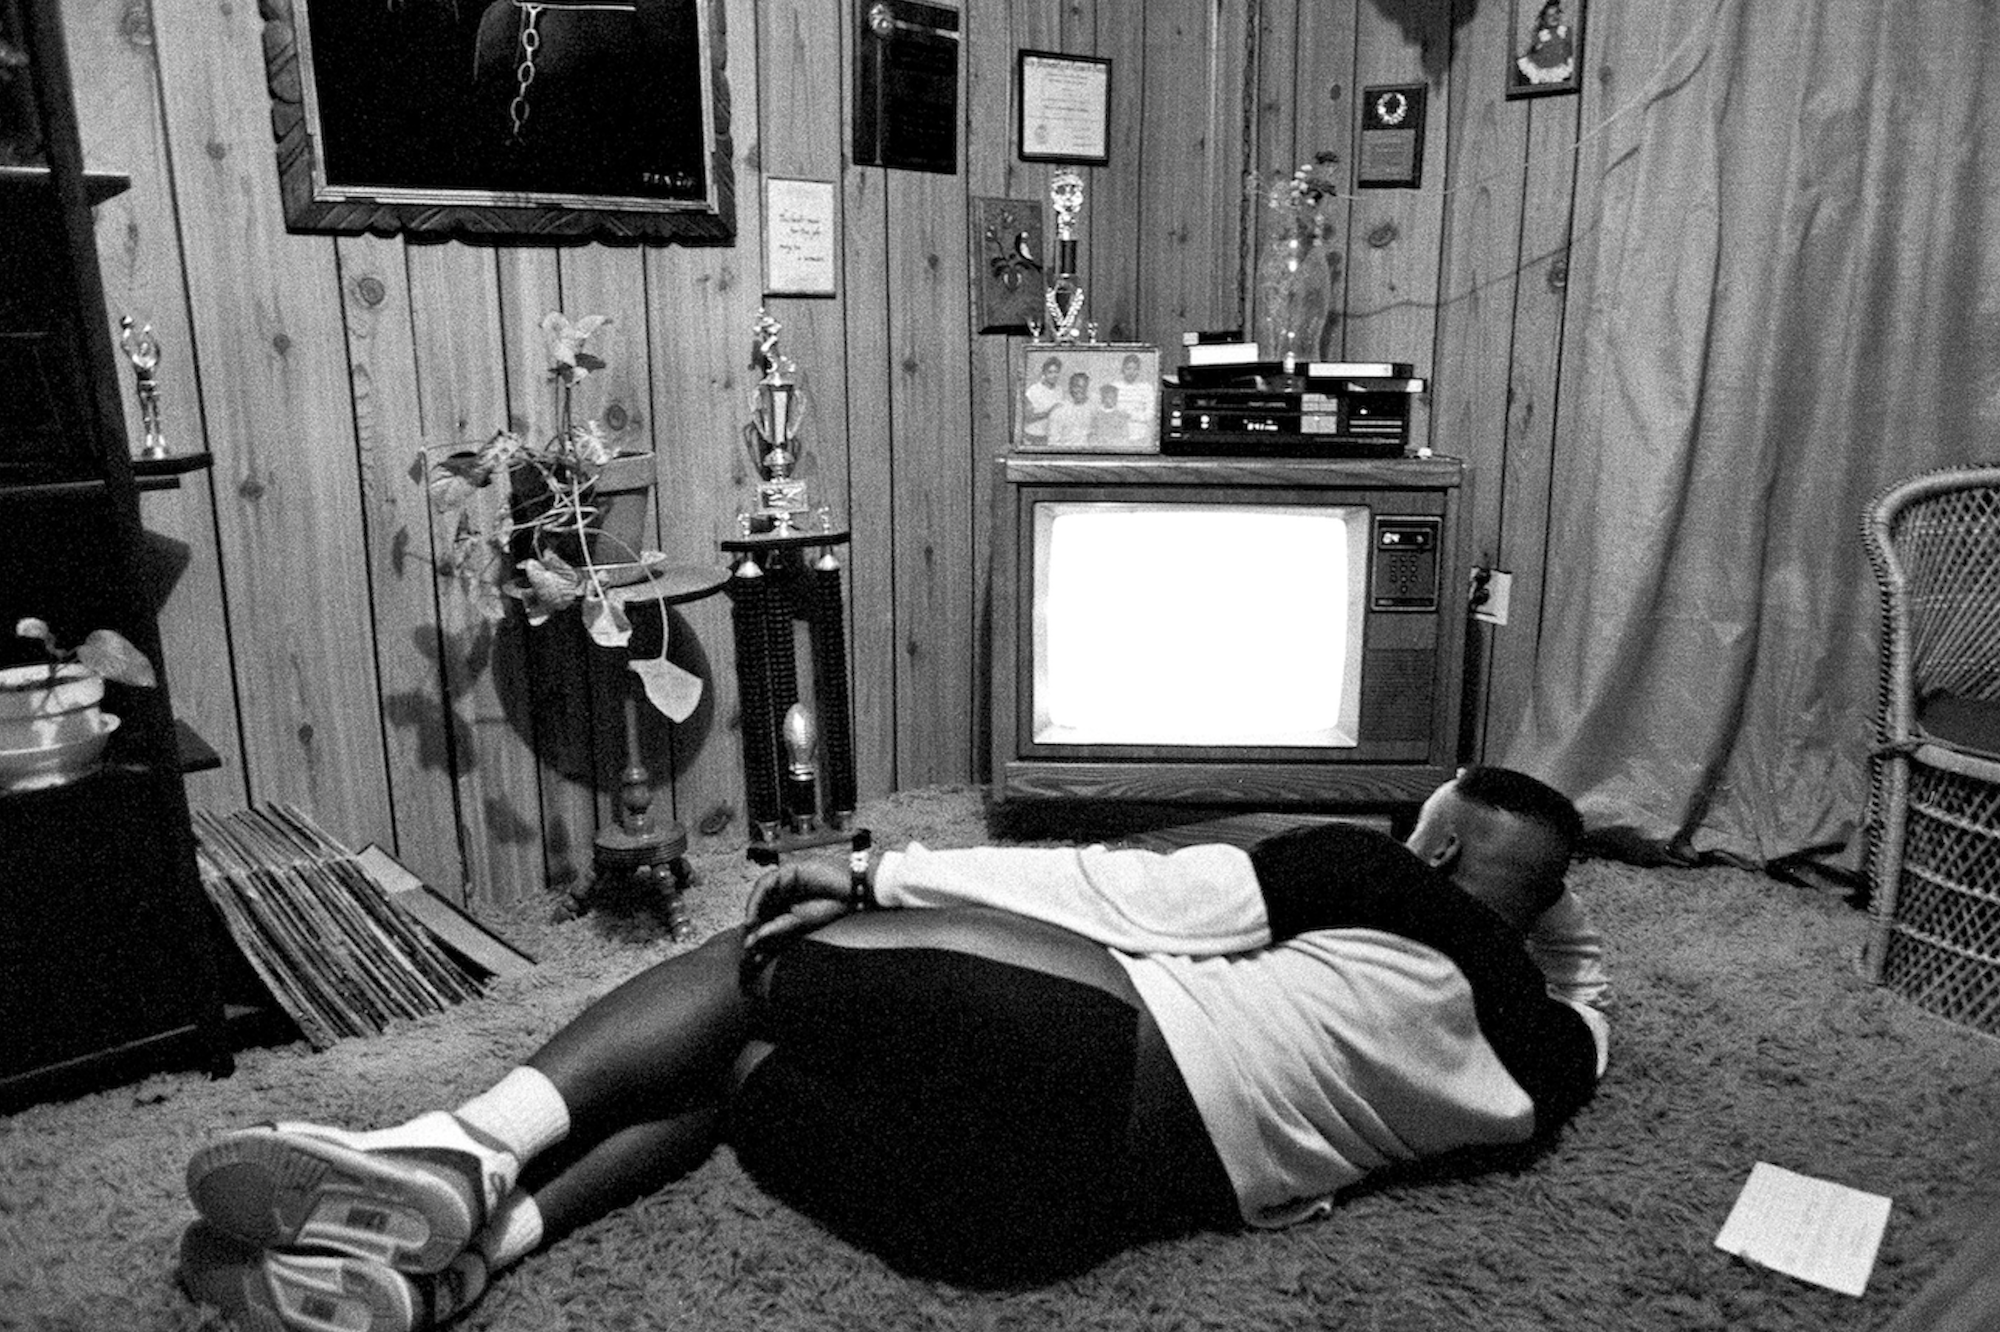 Young man lies on his side on the rug and watches TV with trophies, LP records, and family photos visible